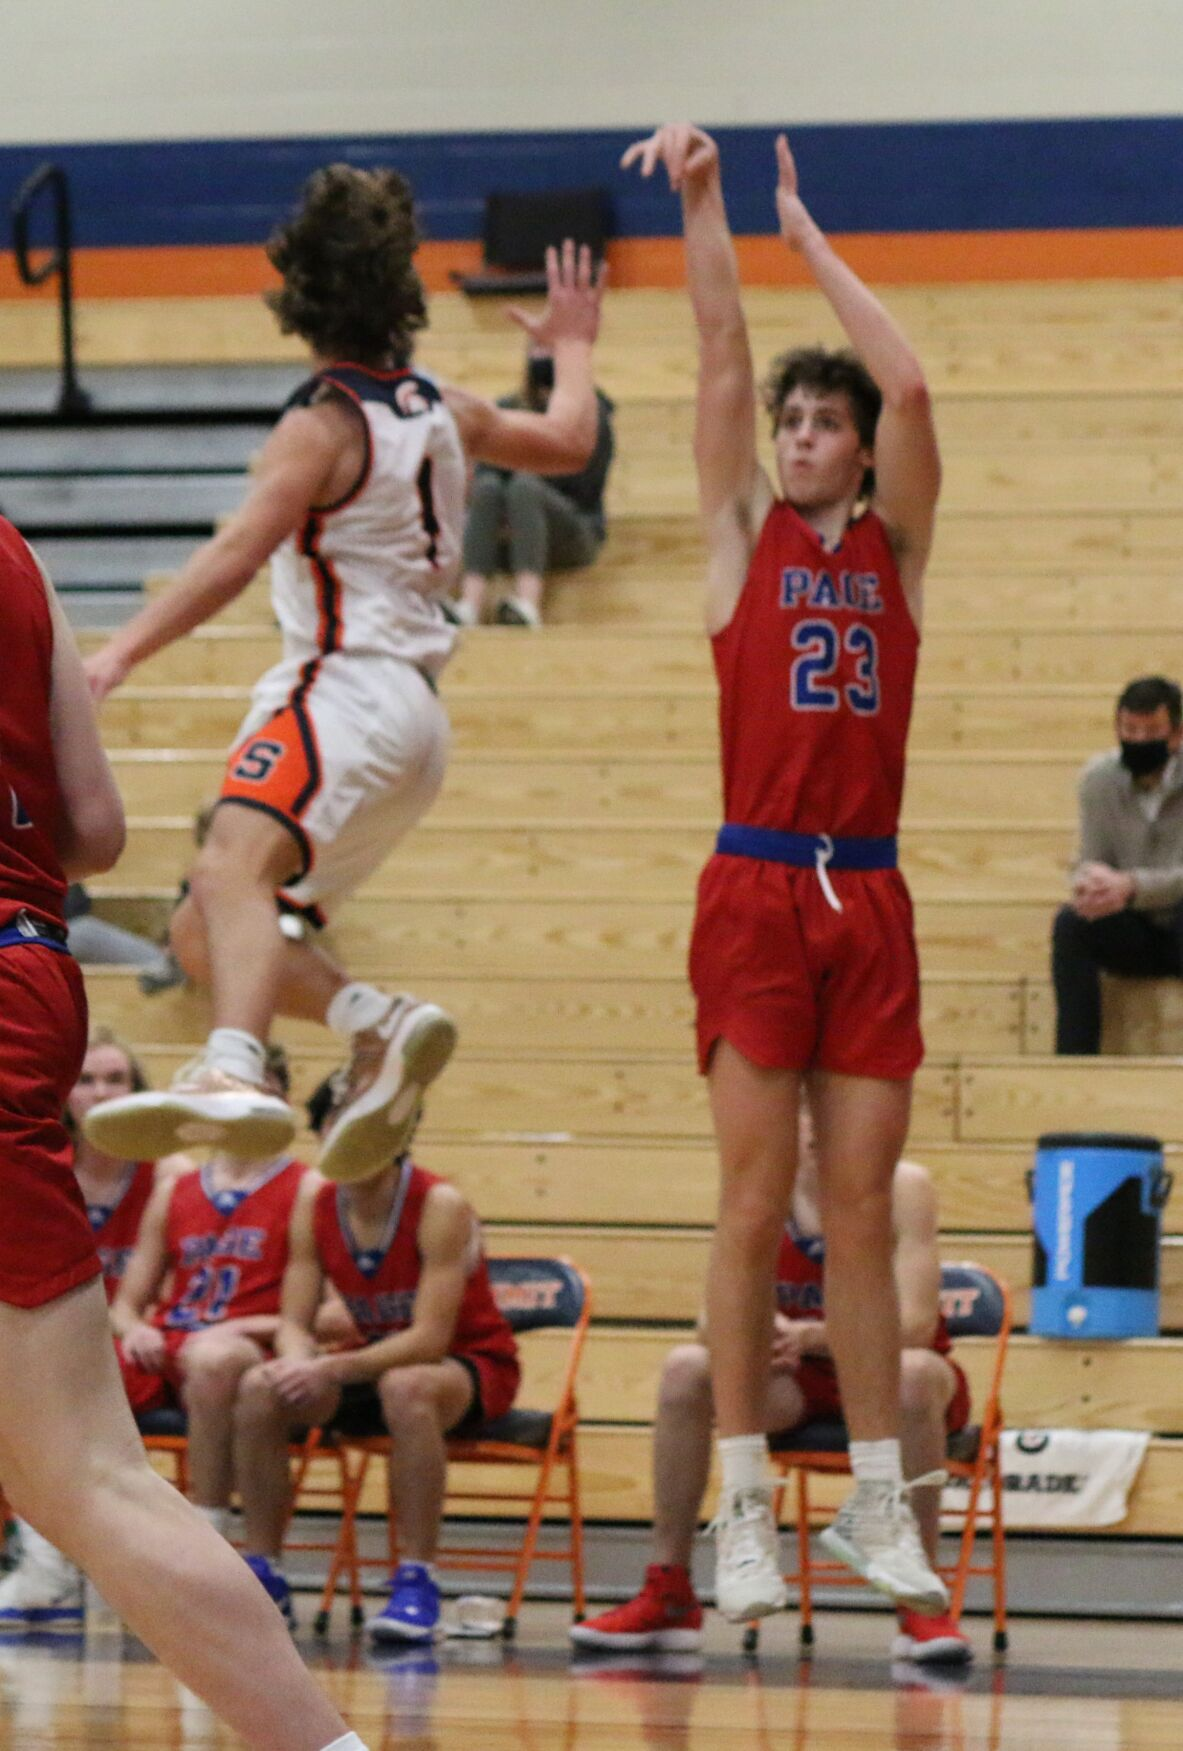 Hoops - Page boys at Summit